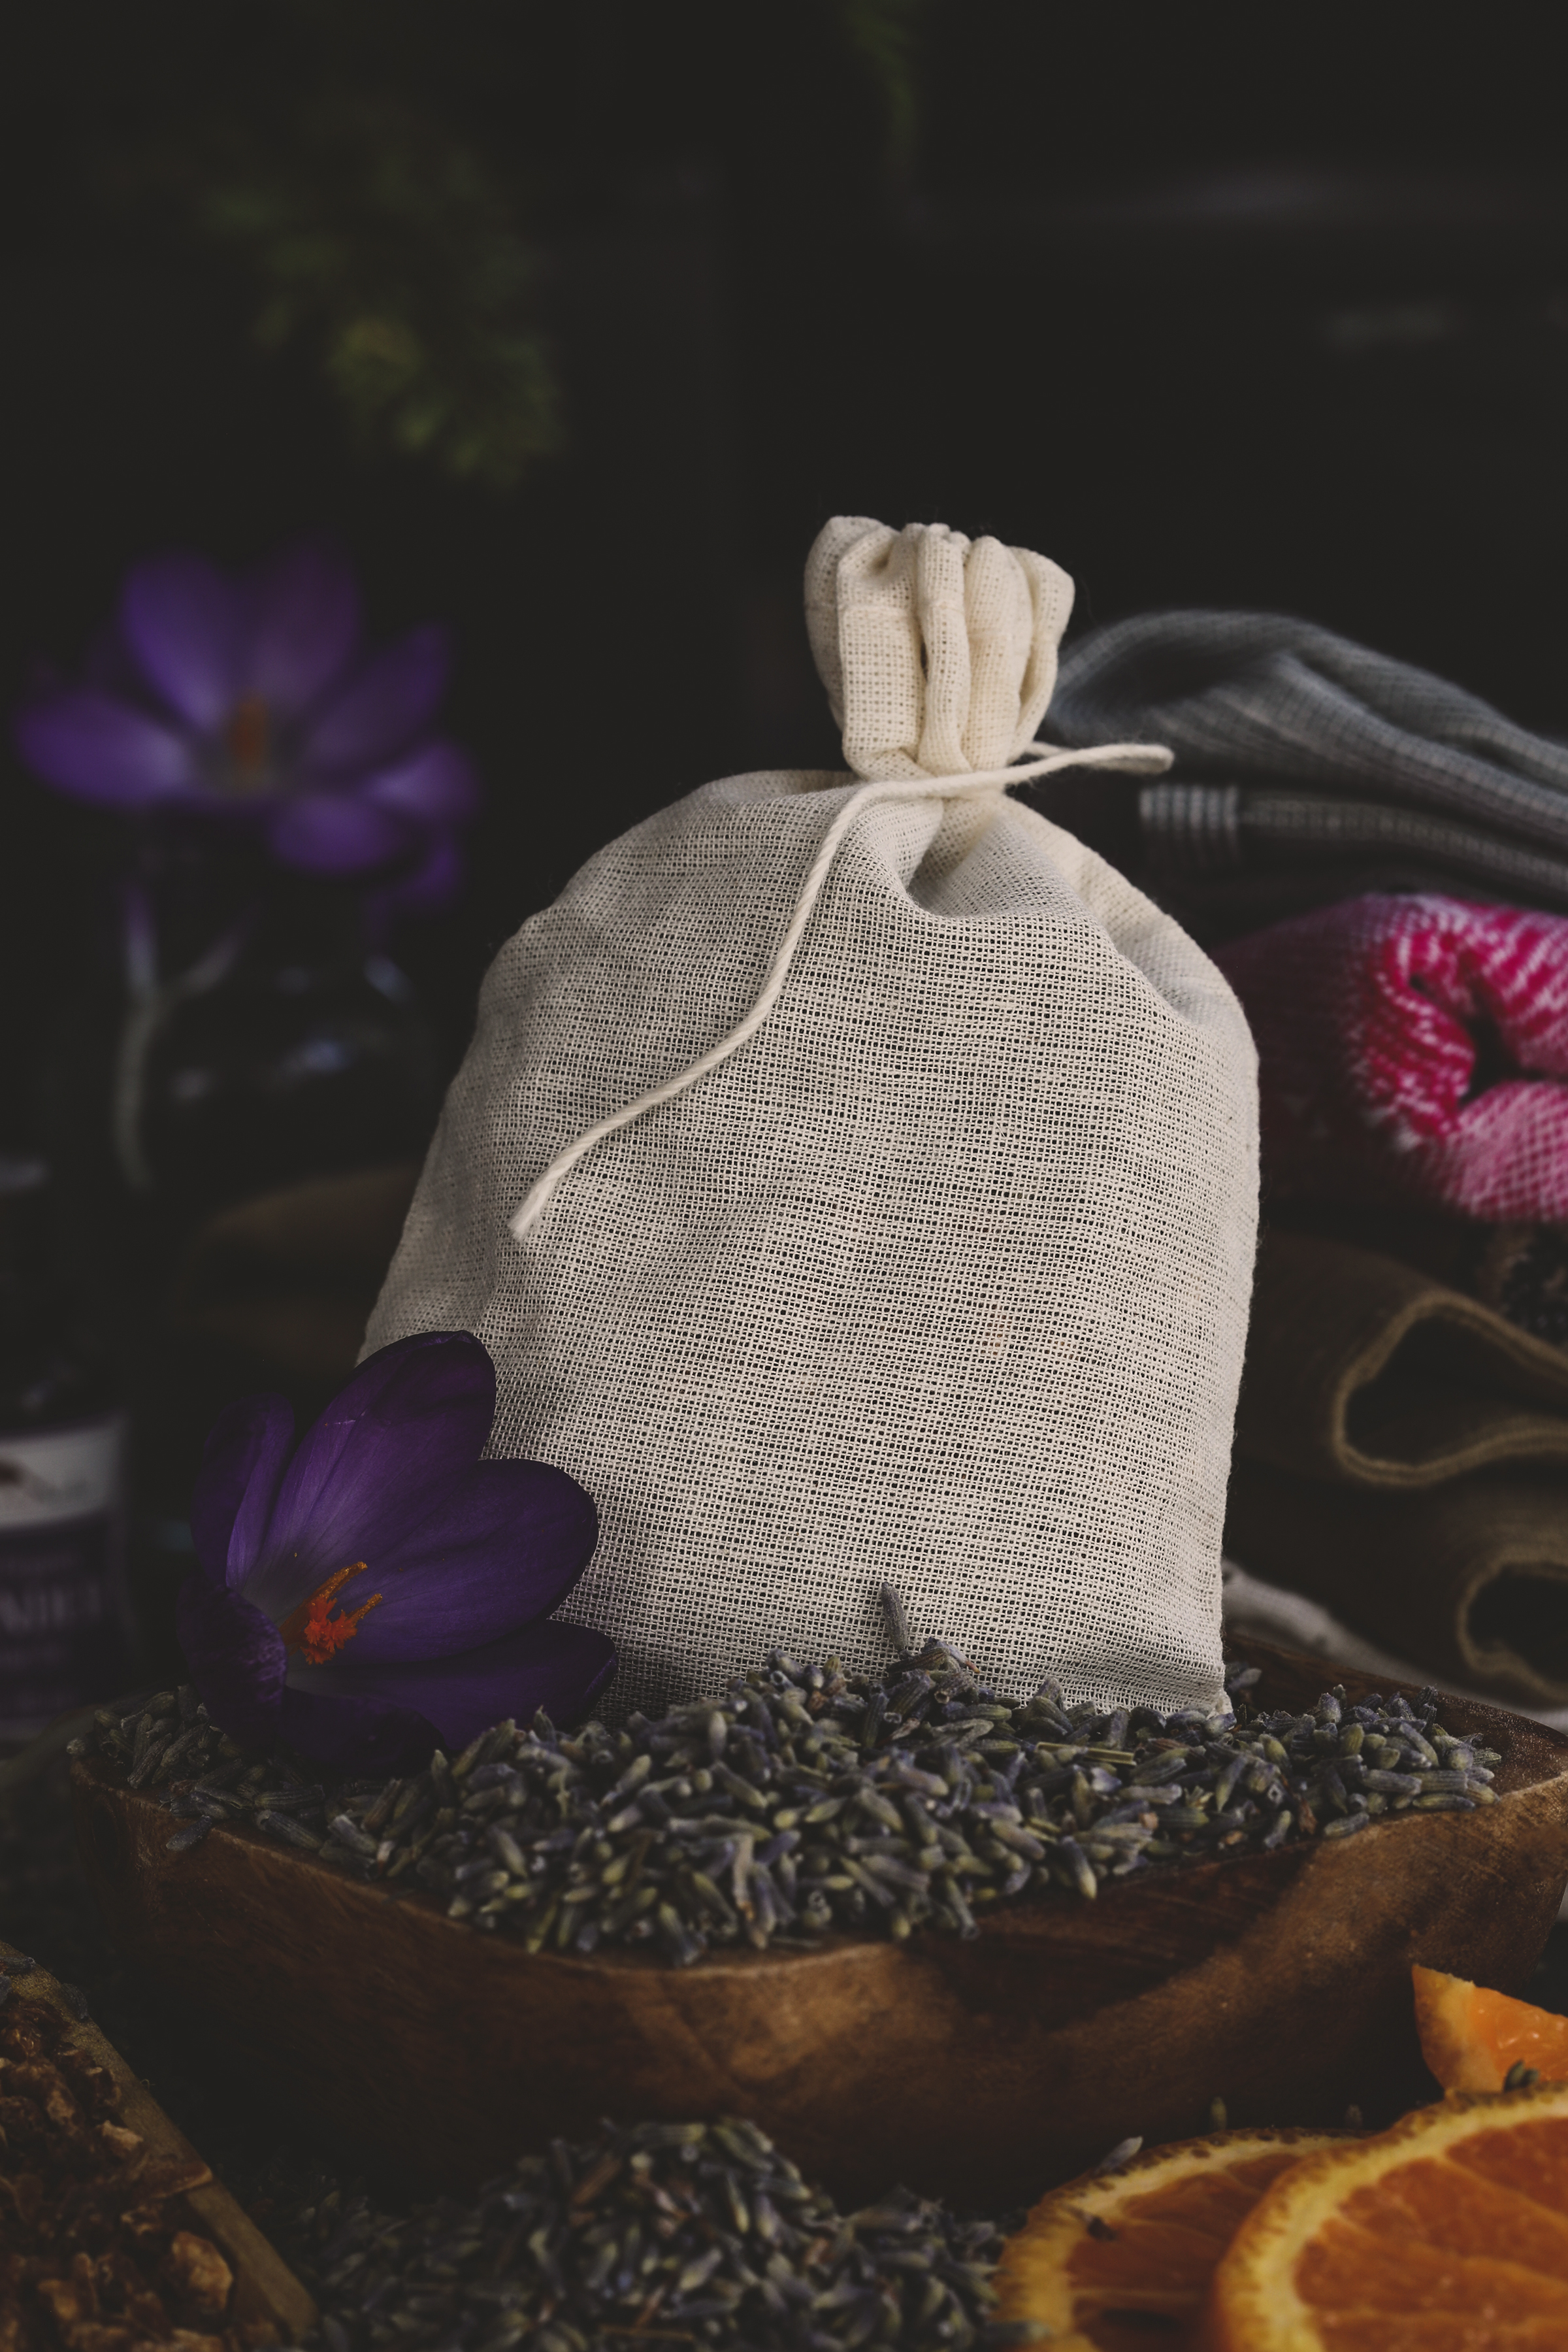 Cotton muslin bag with lavender.